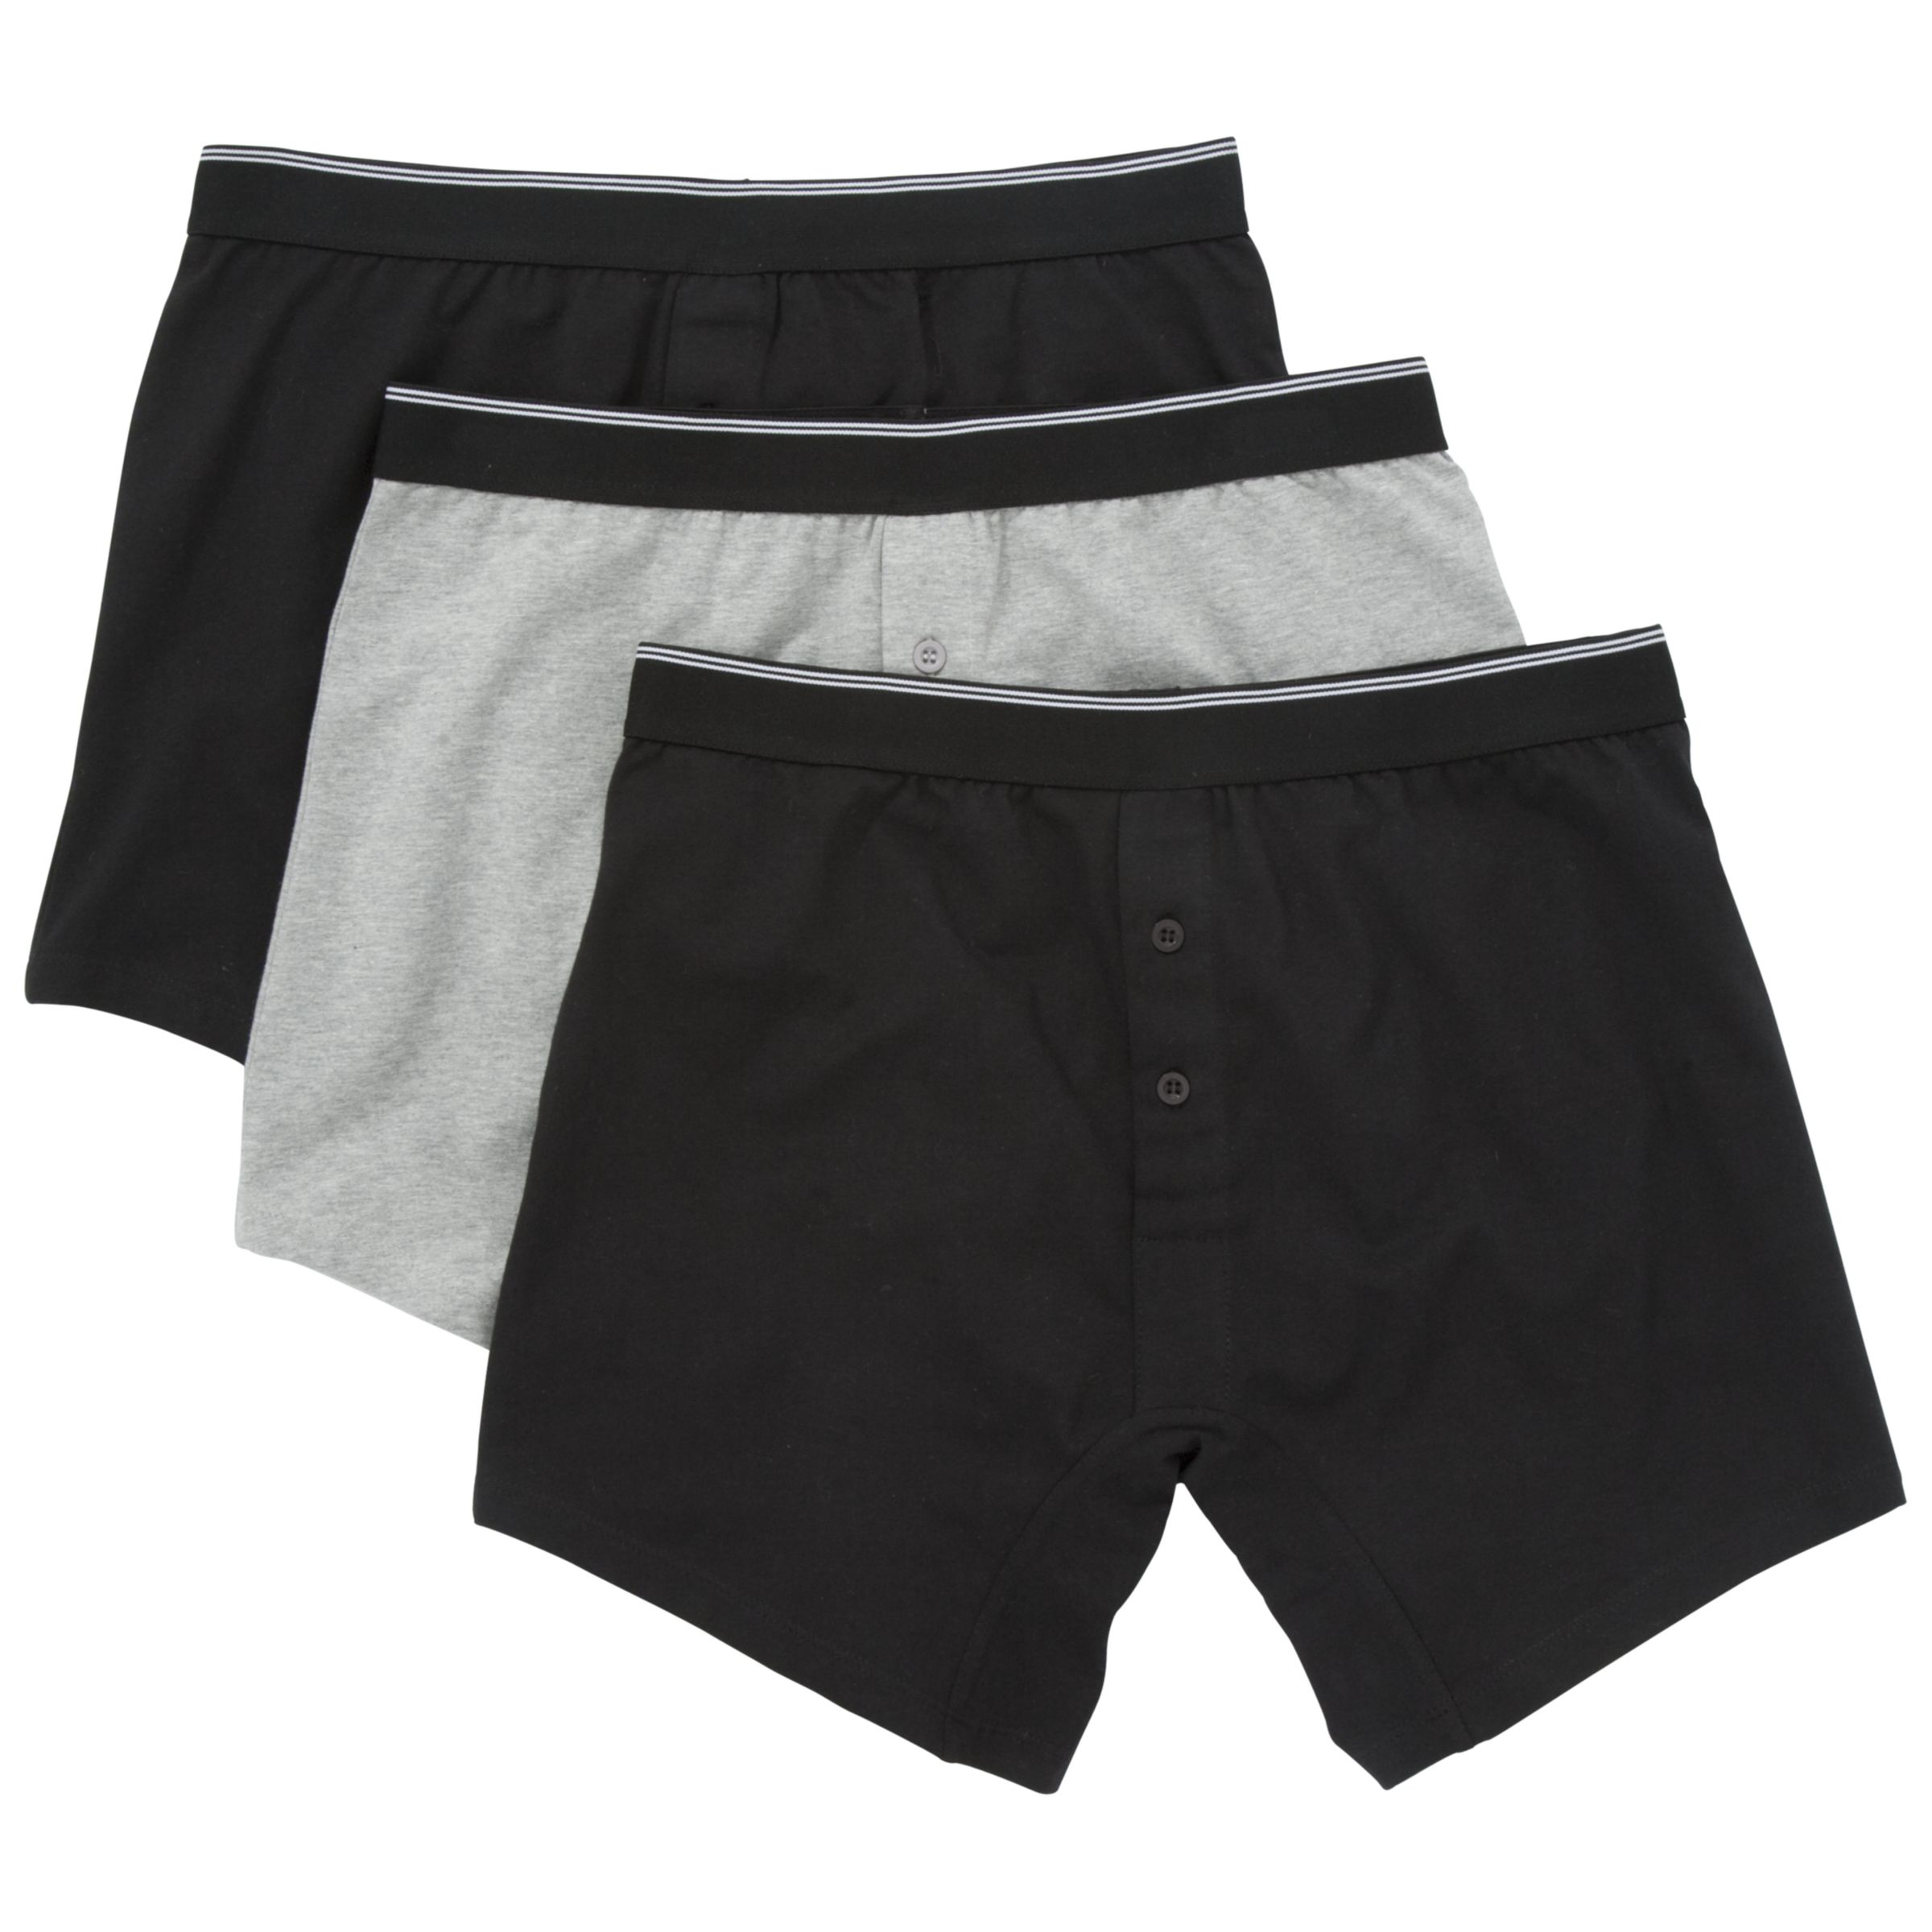 John Lewis Organic Cotton Button Fly Trunks, Pack of 3, Black/Grey